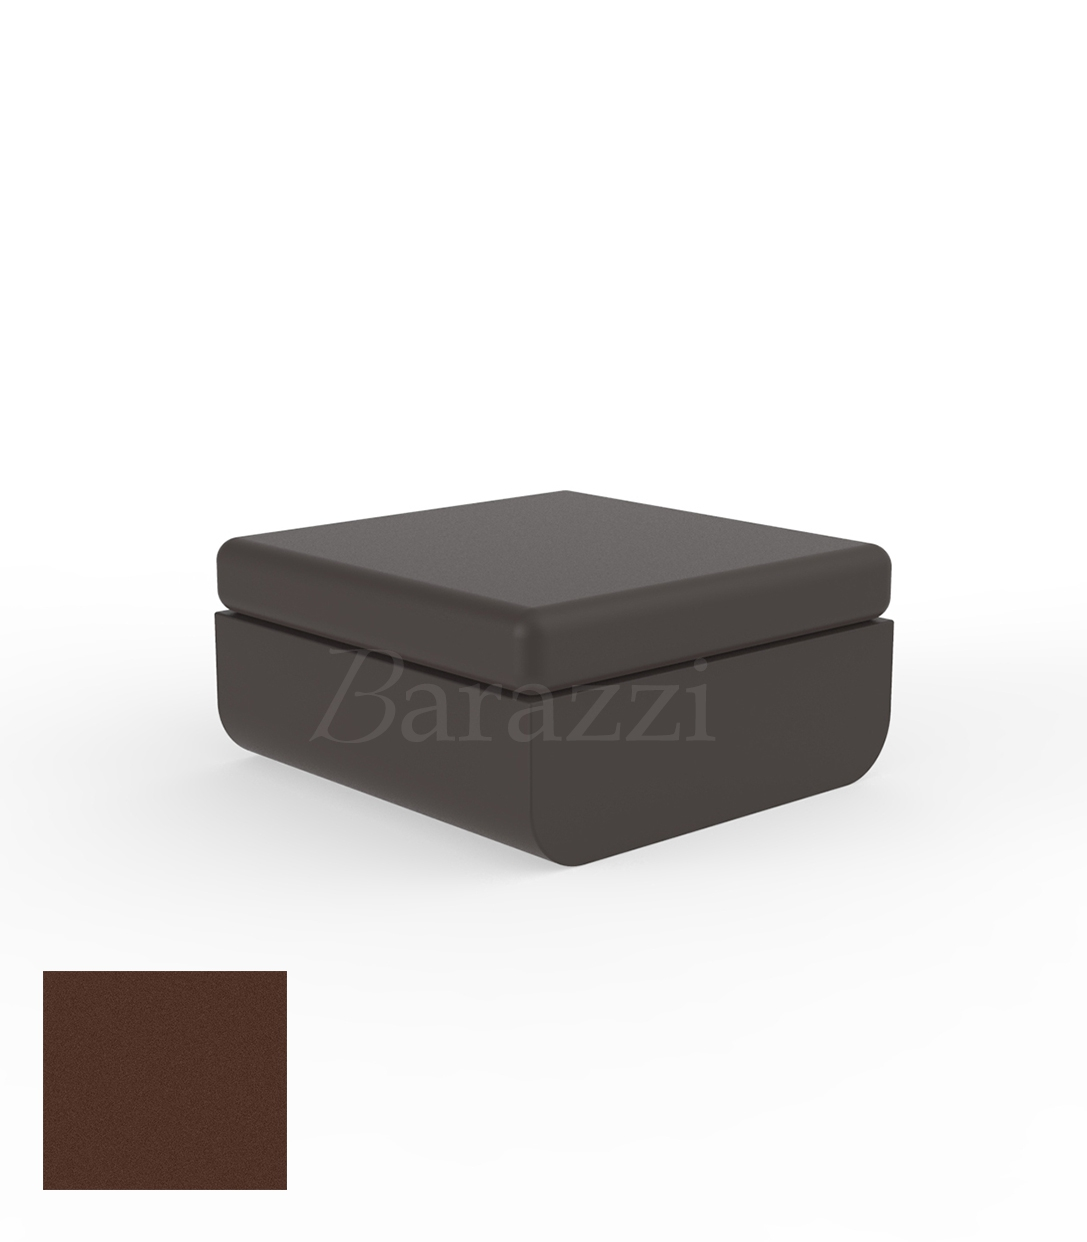 ulm pouf square outdoor matt polyethylene design ottoman. Black Bedroom Furniture Sets. Home Design Ideas